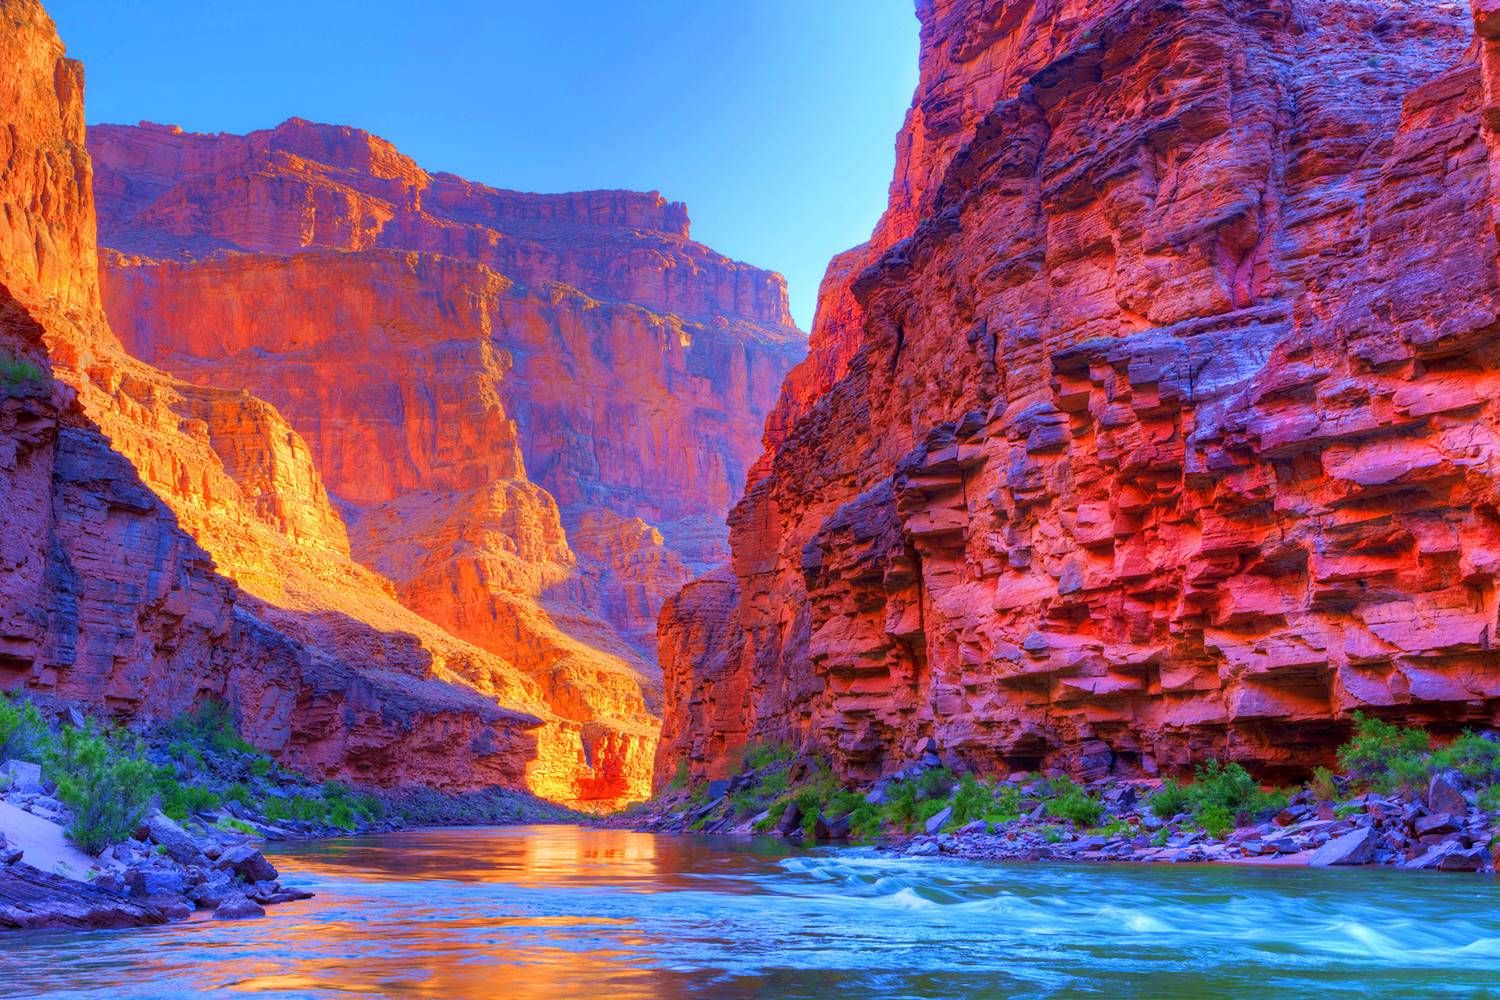 5-Day San Francisco, Los Angeles, Las Vegas, Grand Canyon Tour (With SFO Airport Transfer)